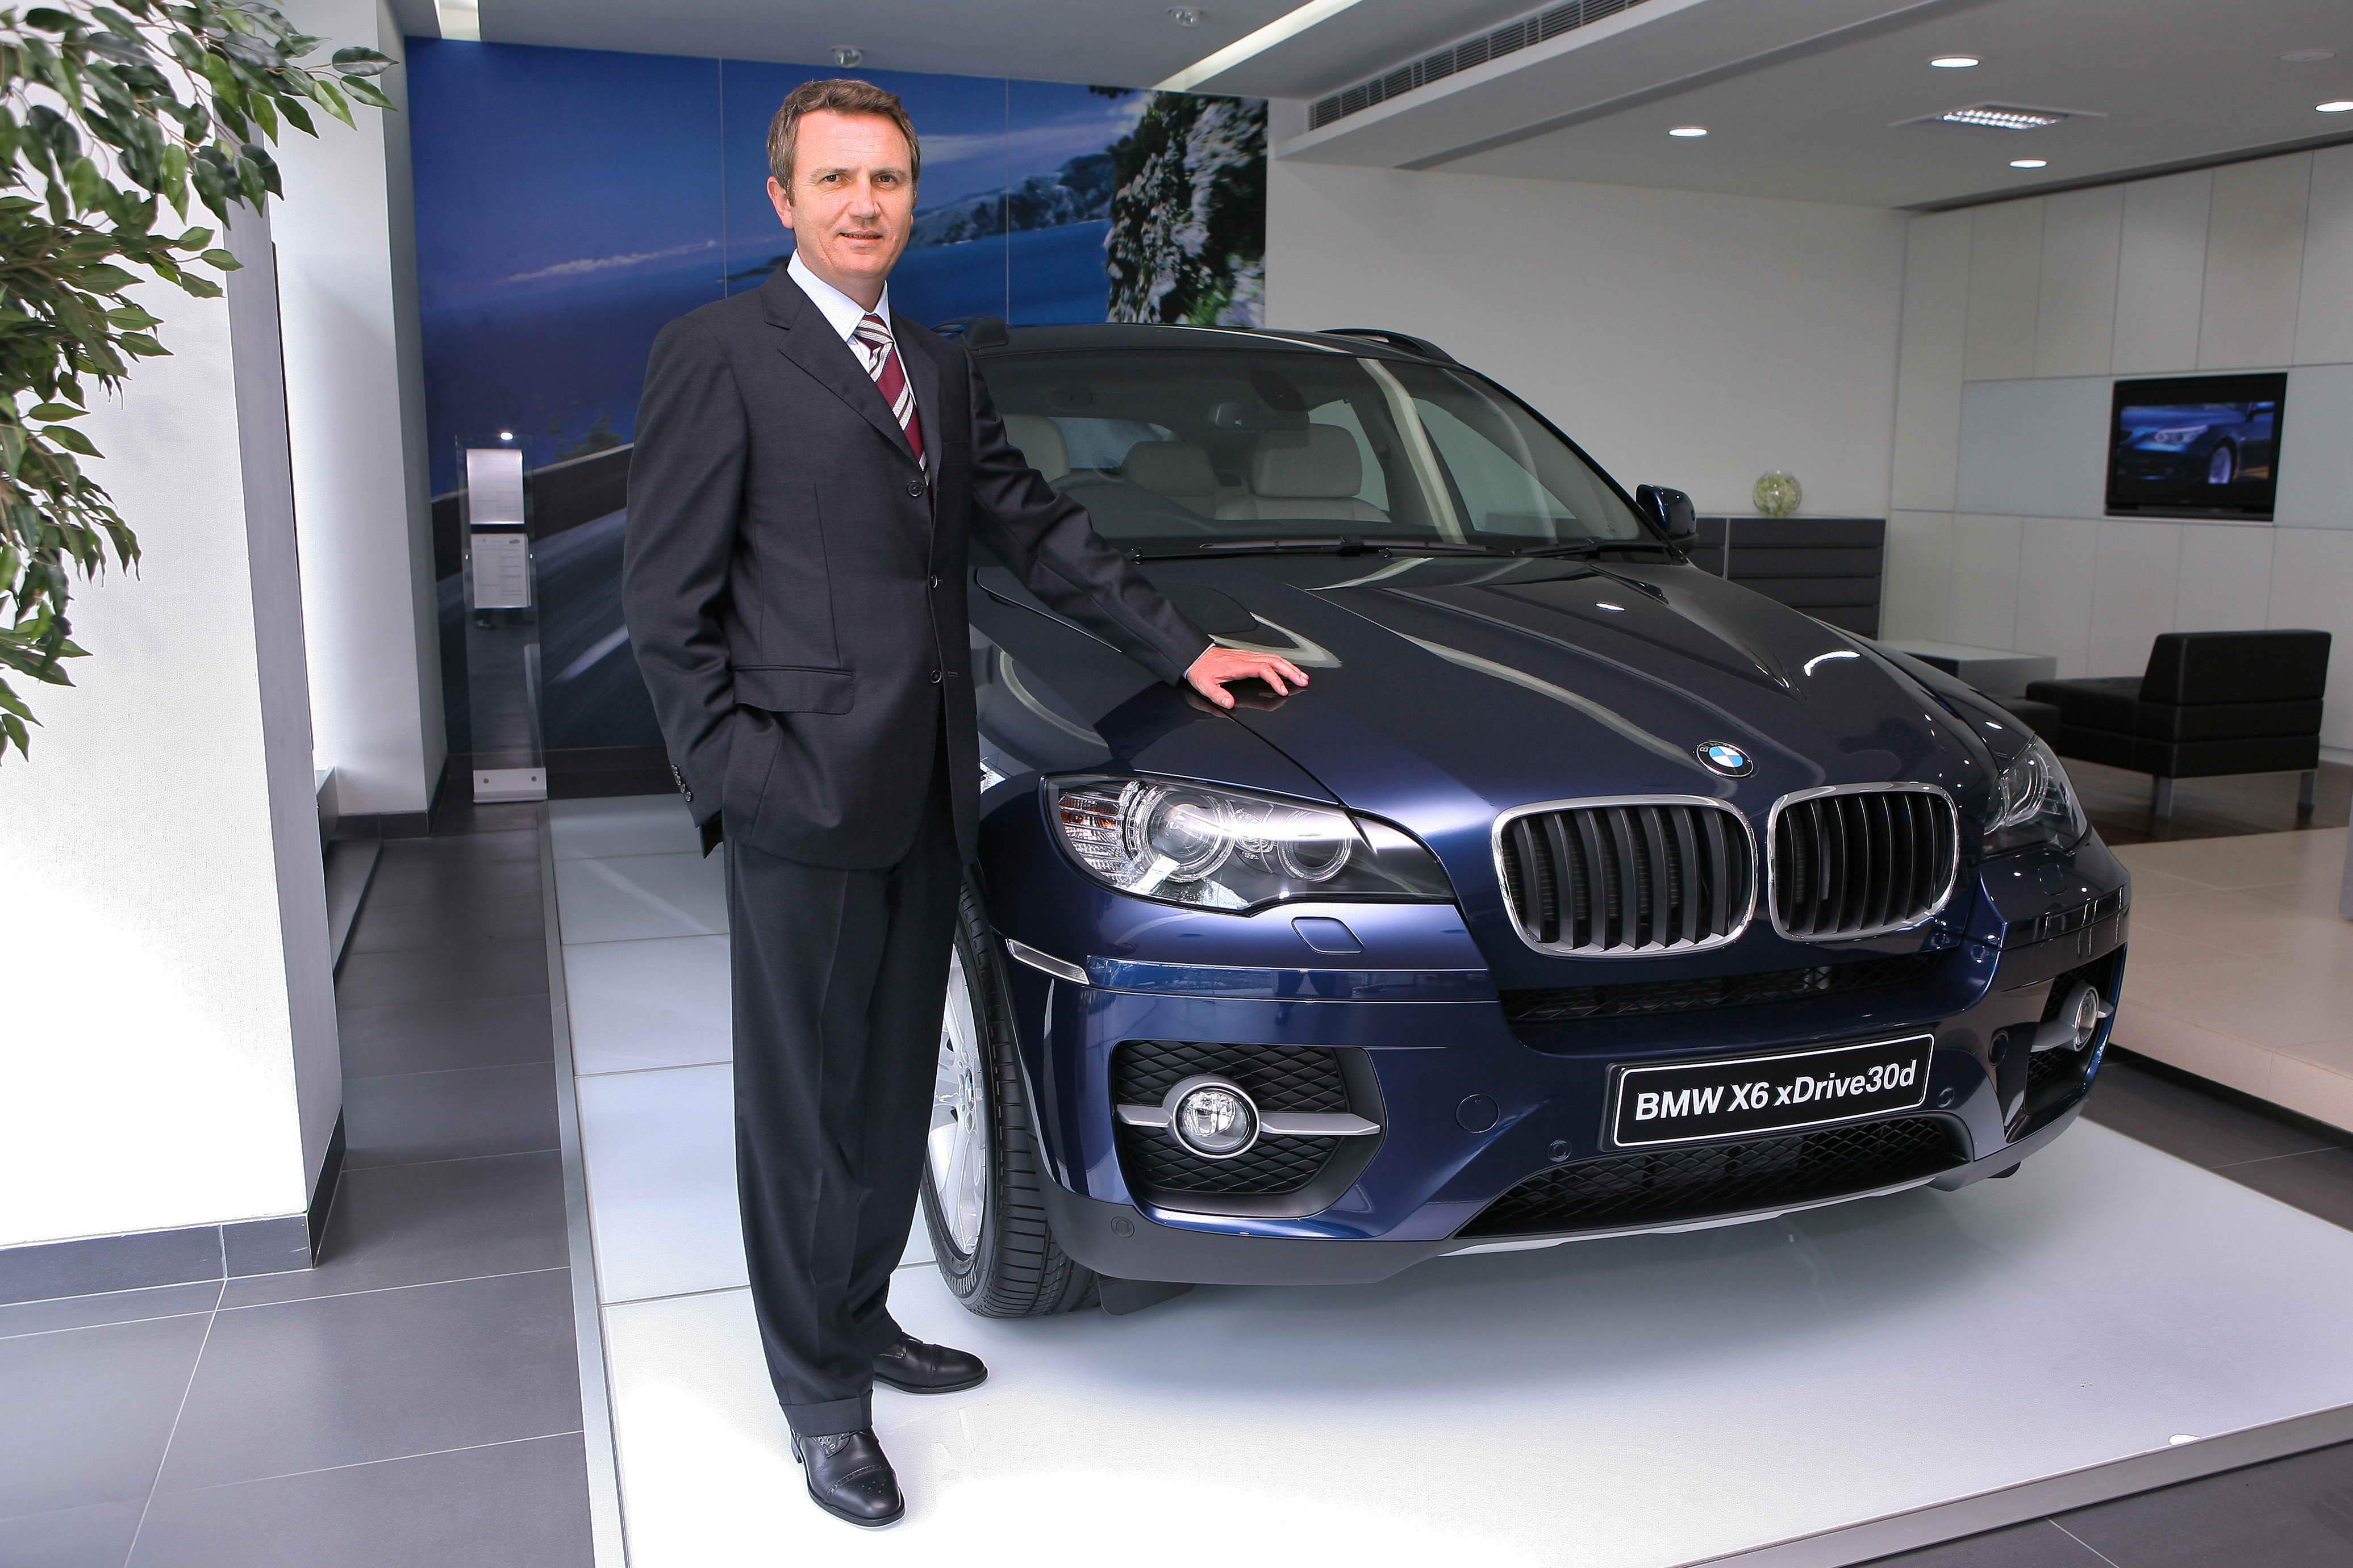 New Bmw Showroom And Workshop Launched In West Delhi By Deutsche